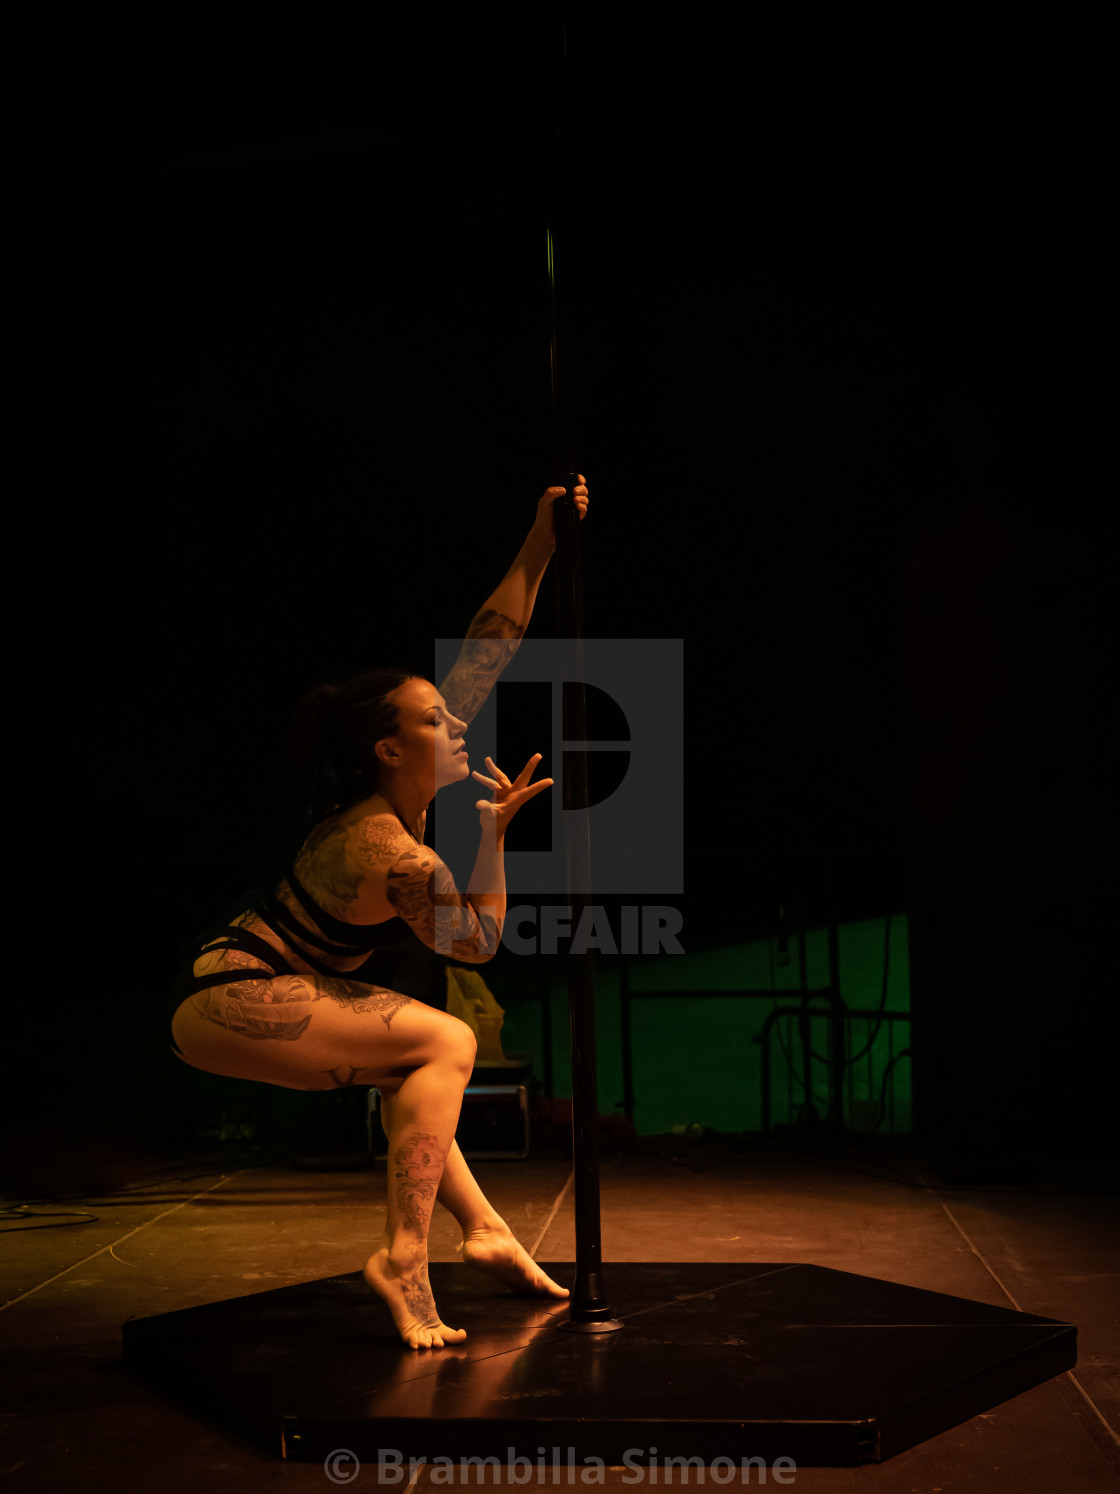 Pole dance dancer performs on stage